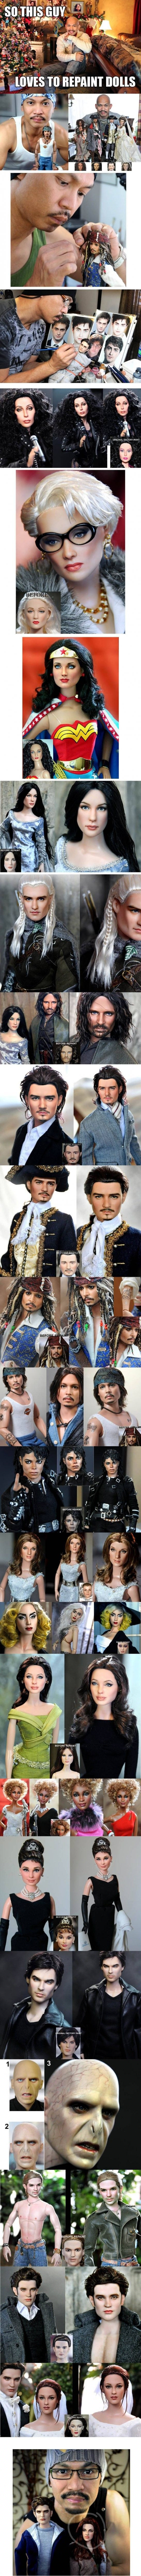 So, this guy likes to repaint dolls... This is really awesome, actually.... He should work for mattel